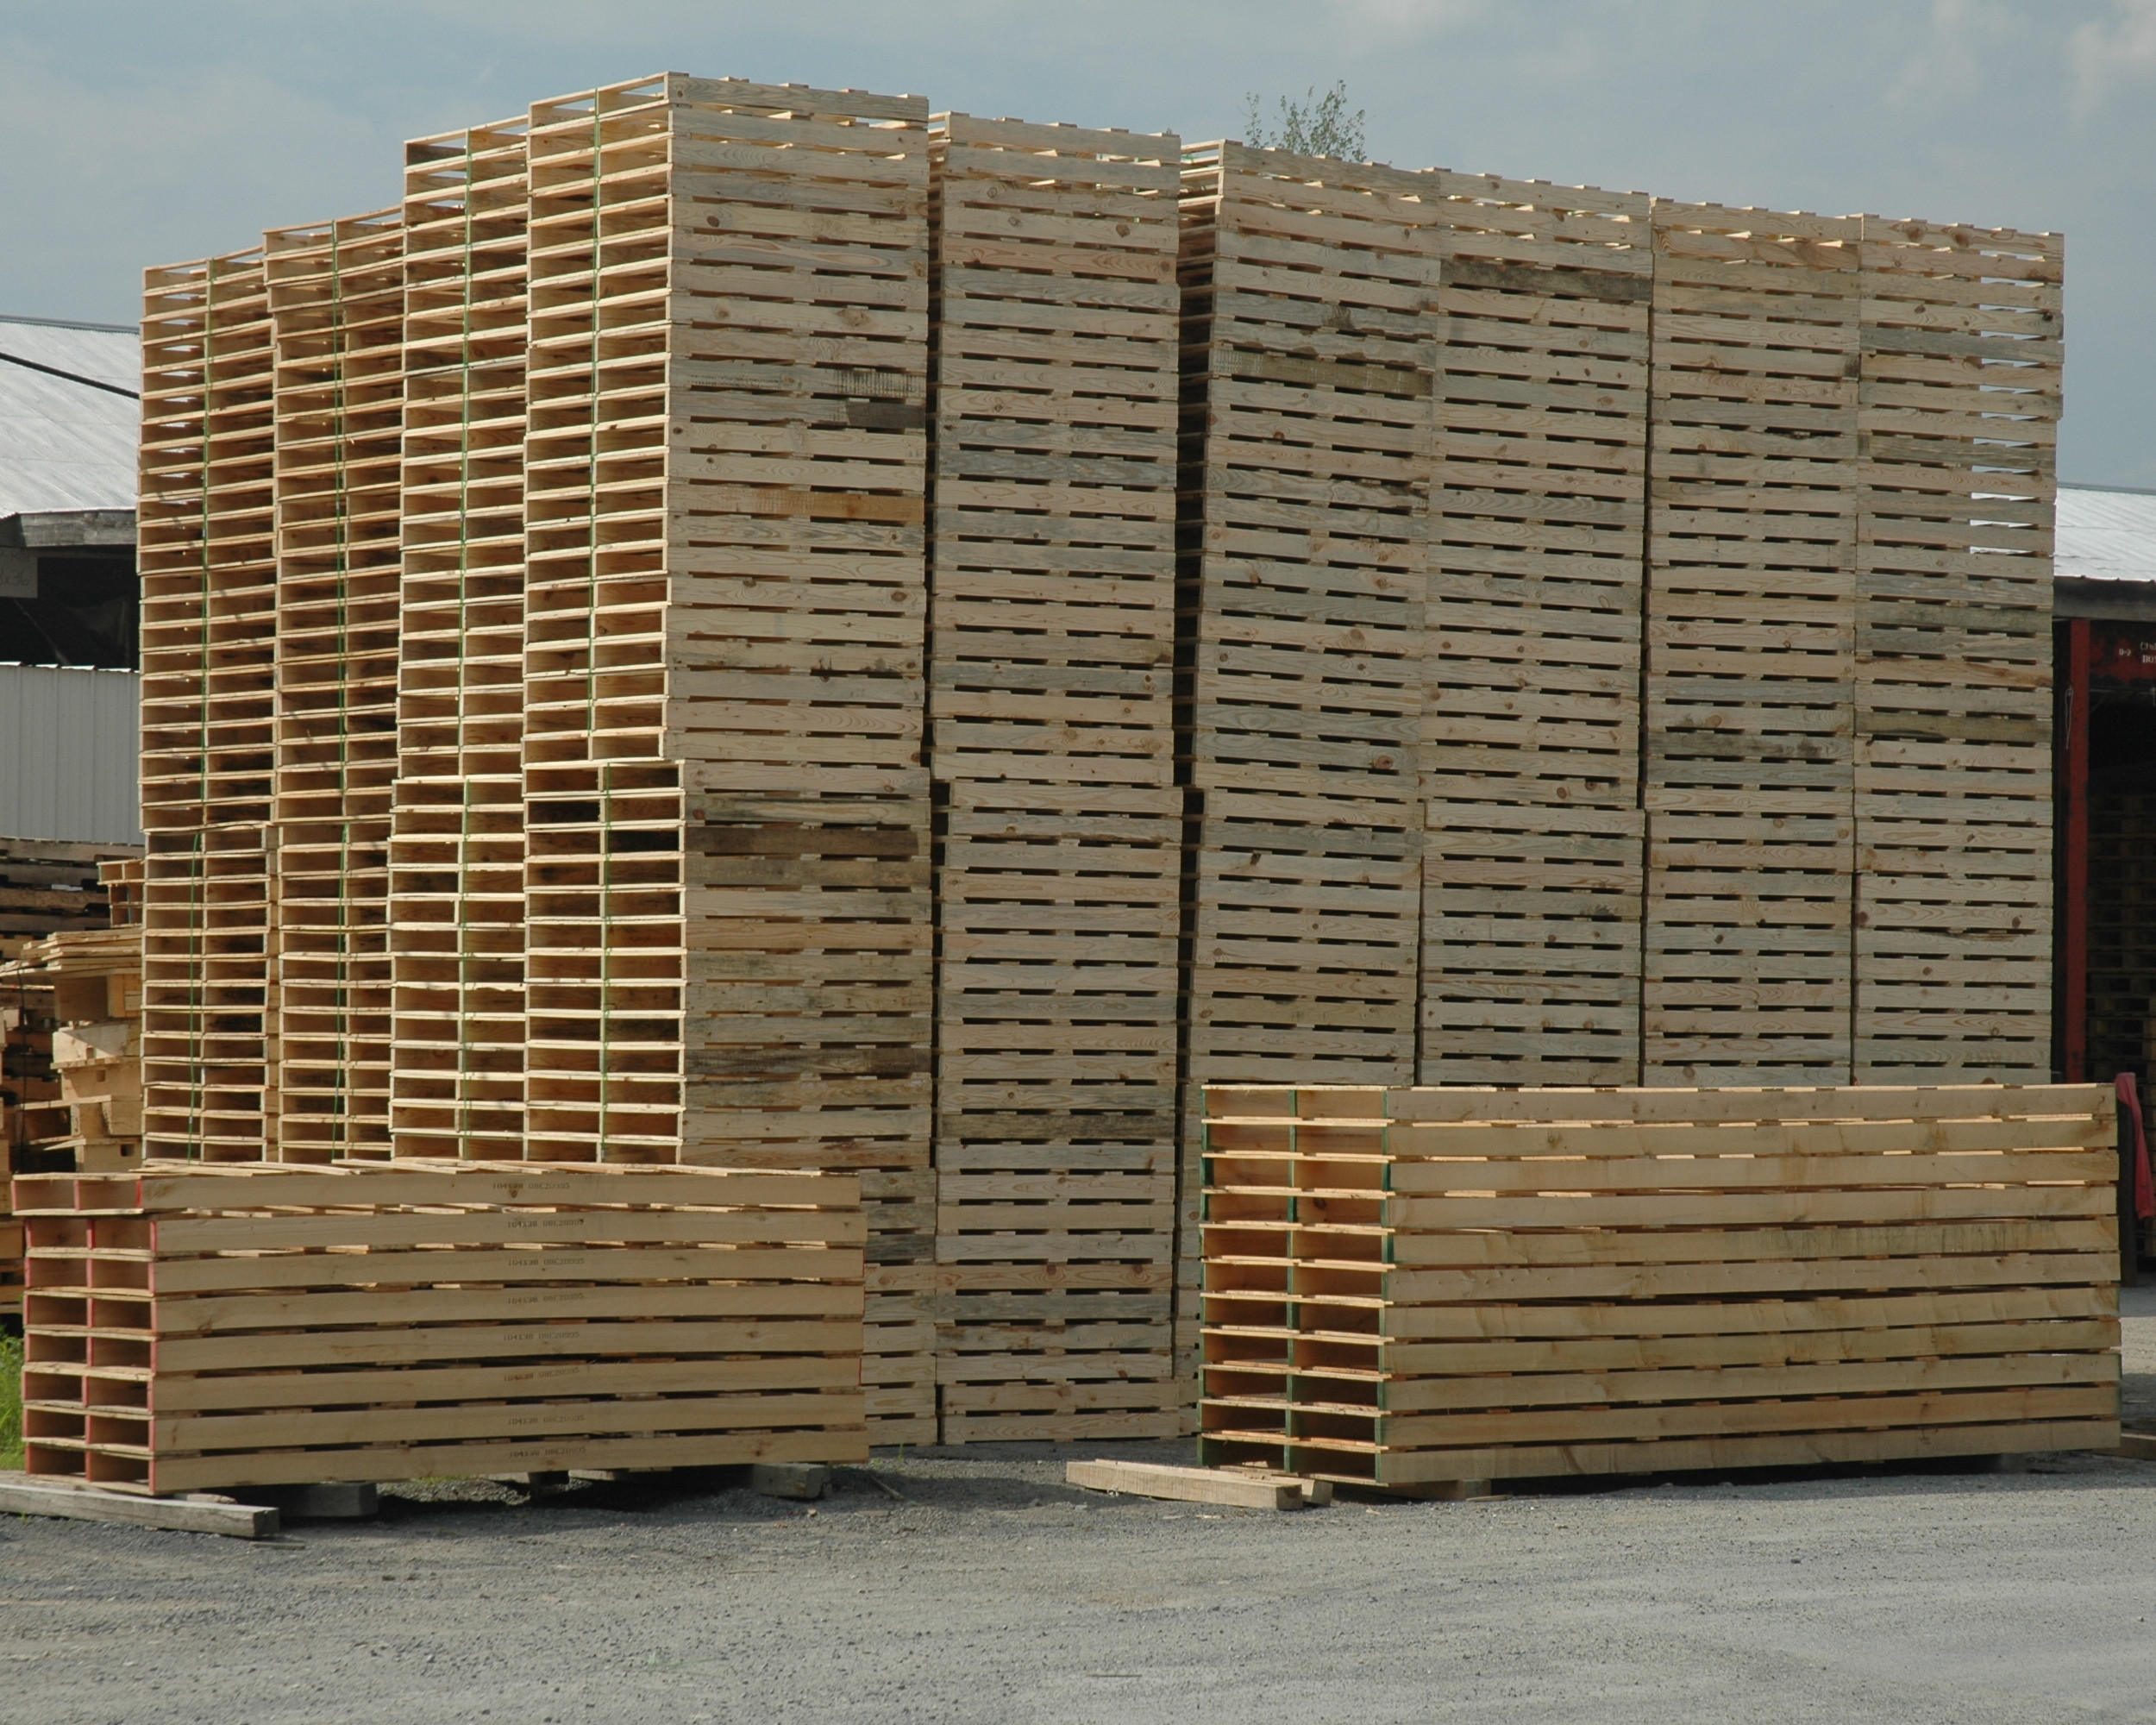 hardwood floor installation 101 of allow pallets incorporated to educate you on pallet and industry terms regarding manufacturing quality wood pallets since 1942 wooden pallets